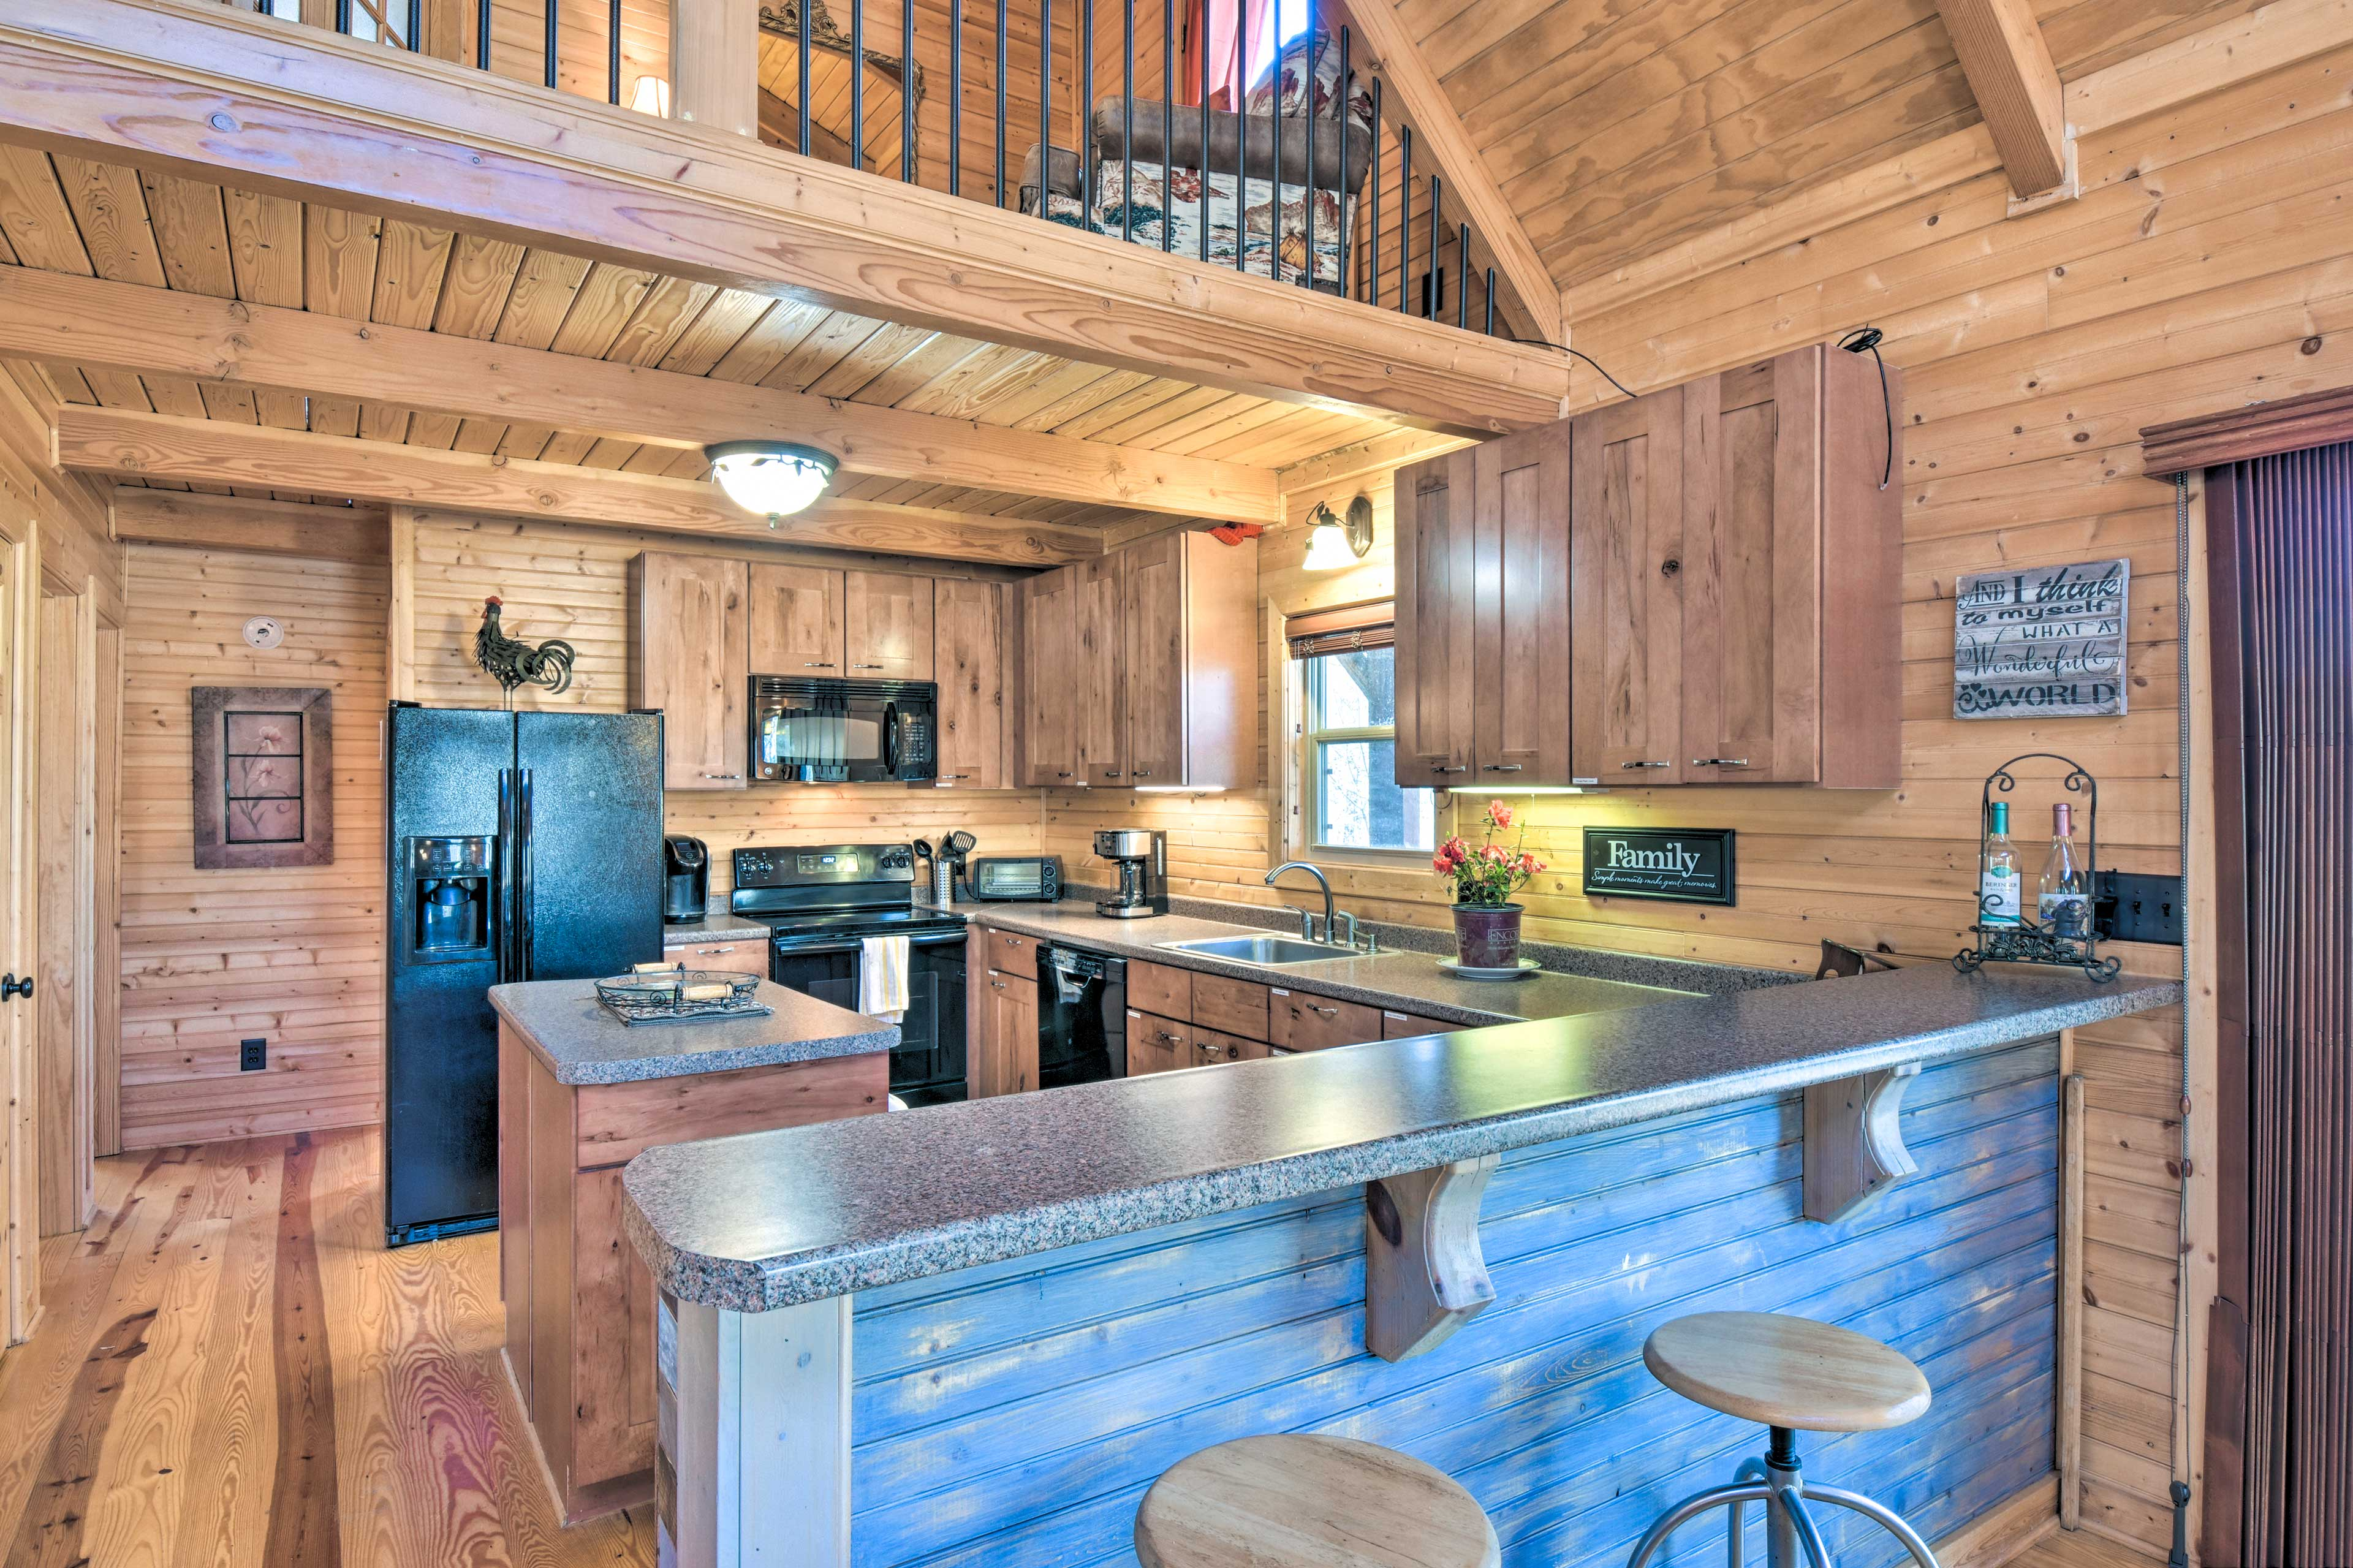 This kitchen boasts a center island and ample space to whip up a meal.